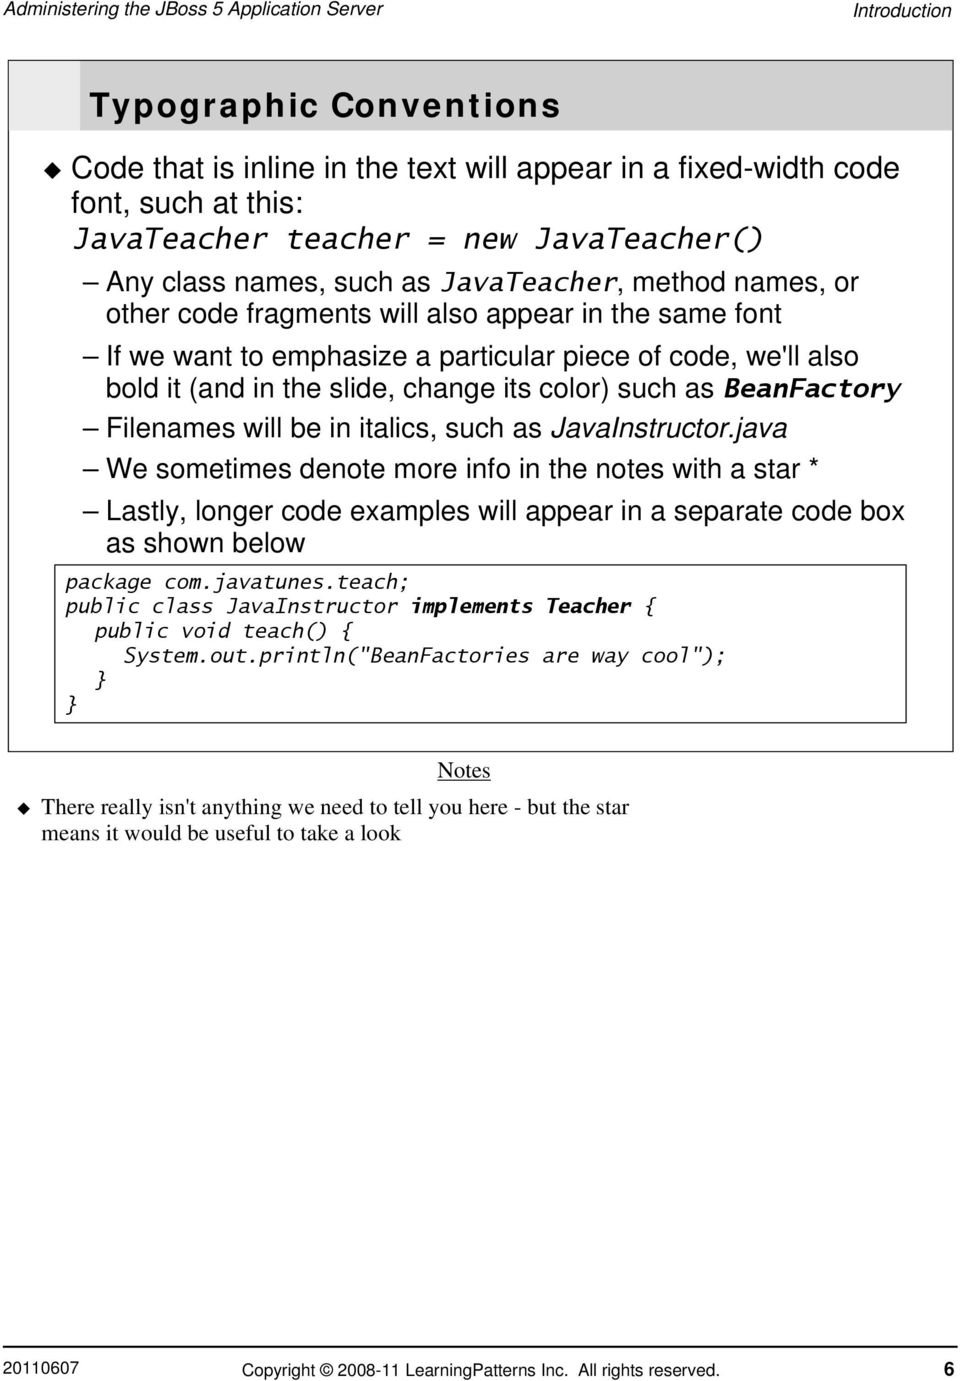 Table of Contents JBoss AS 5 Administration - PDF